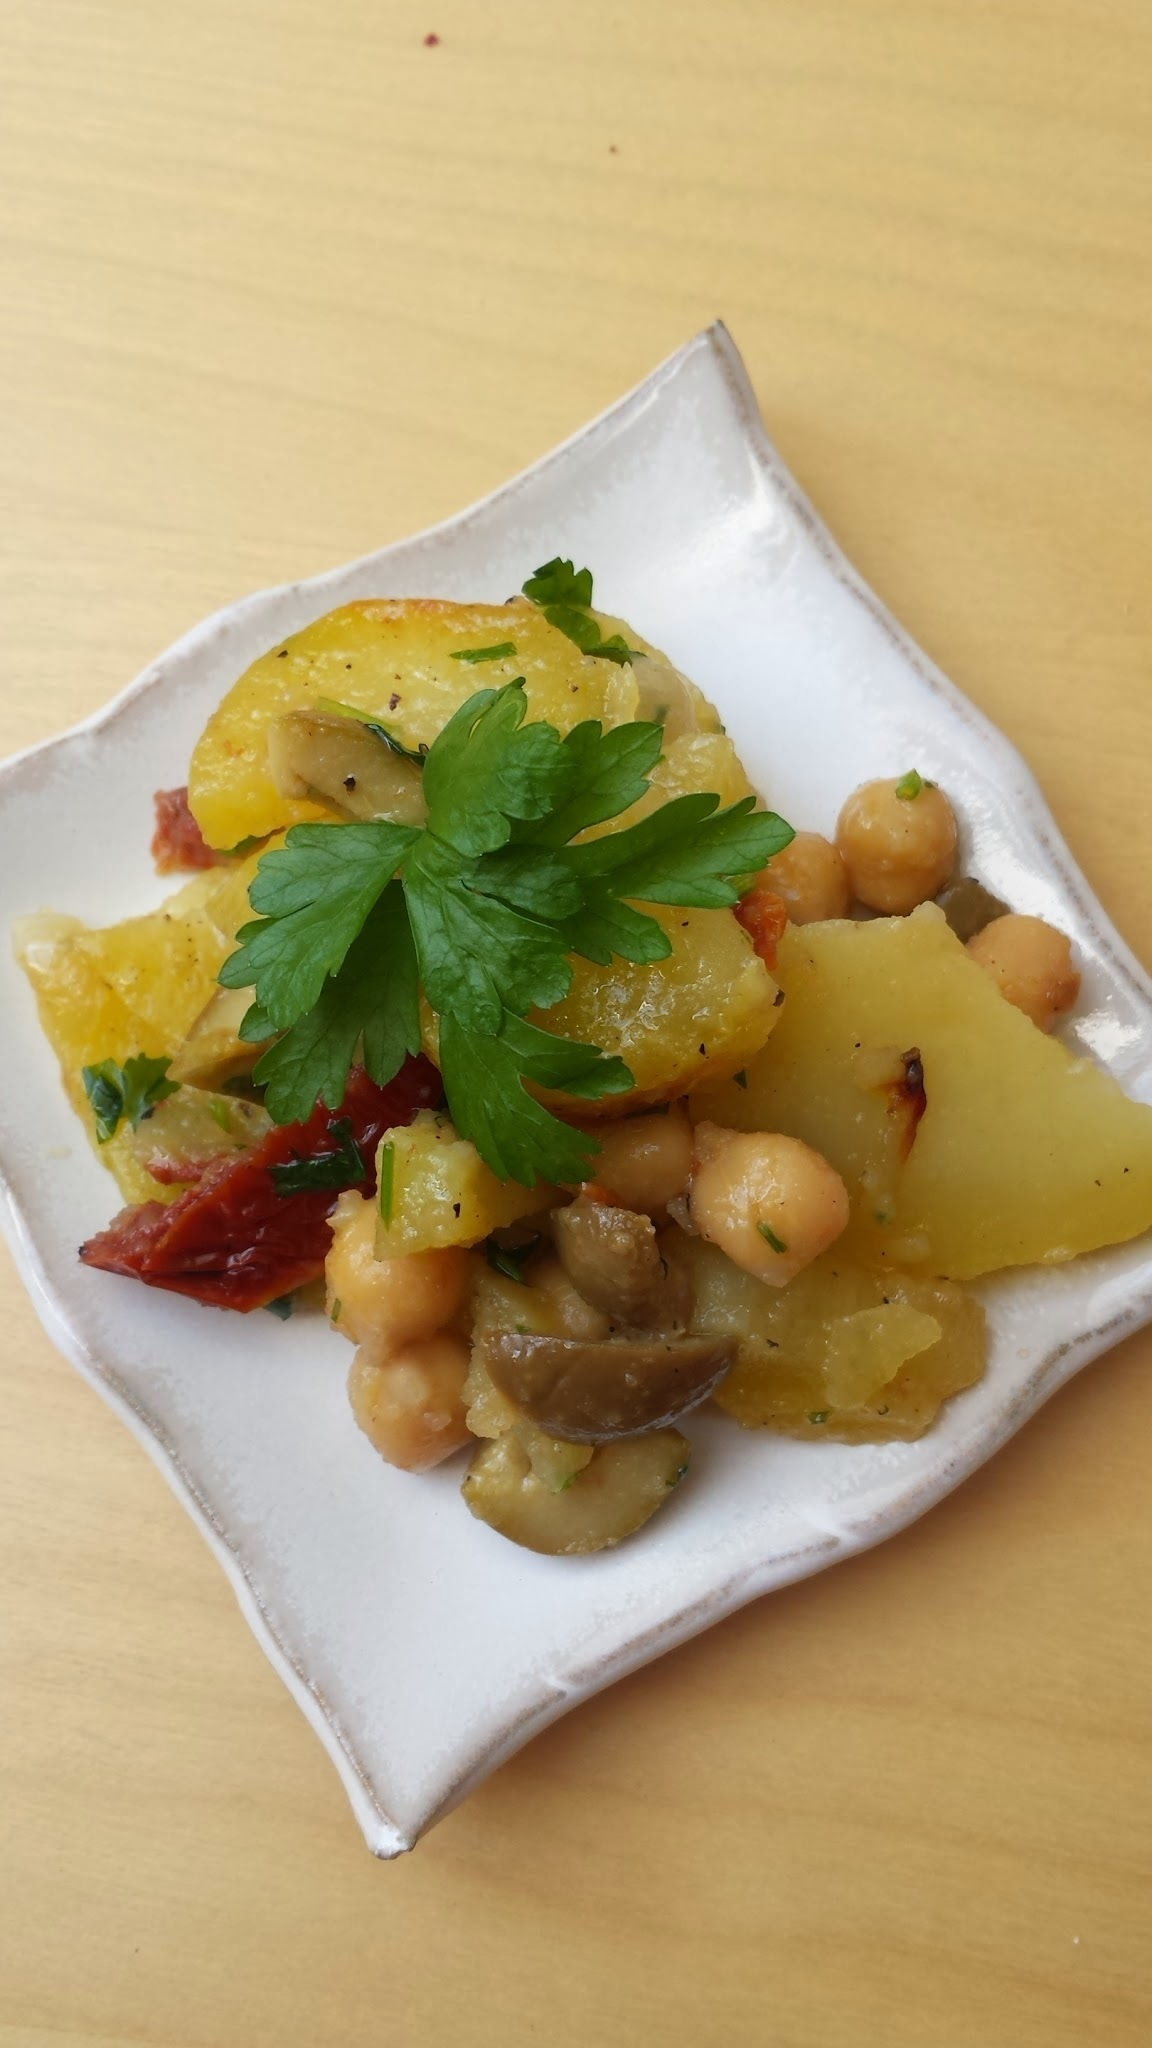 Bratkartoffelsalat mit getrockneten Tomaten und Kichererbsen   -    roasted potato salad with sundried tomatoes and chickpeas